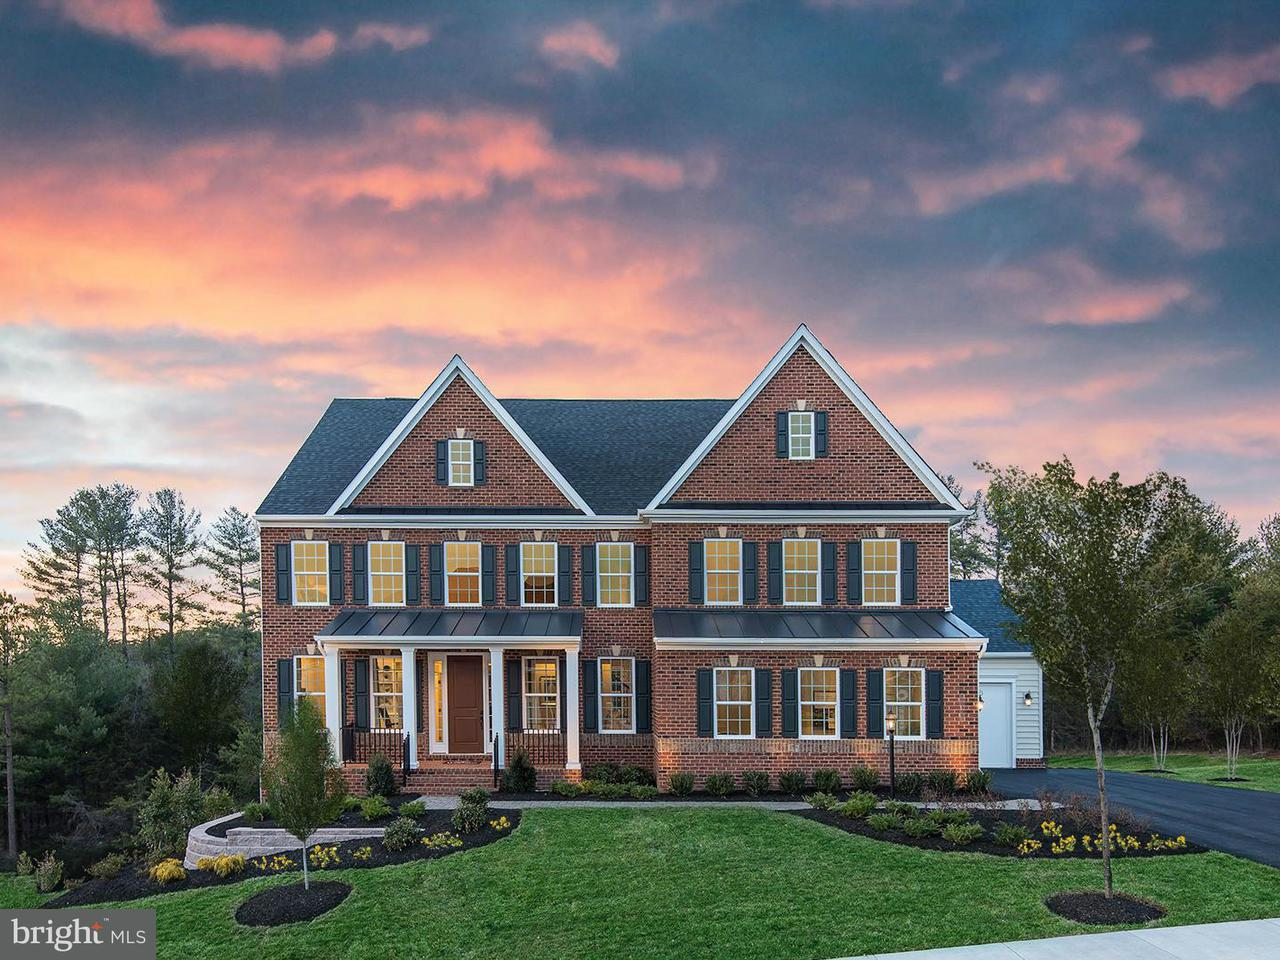 Single Family Home for Sale at 3094 DESMOND Place 3094 DESMOND Place Ijamsville, Maryland 21754 United States